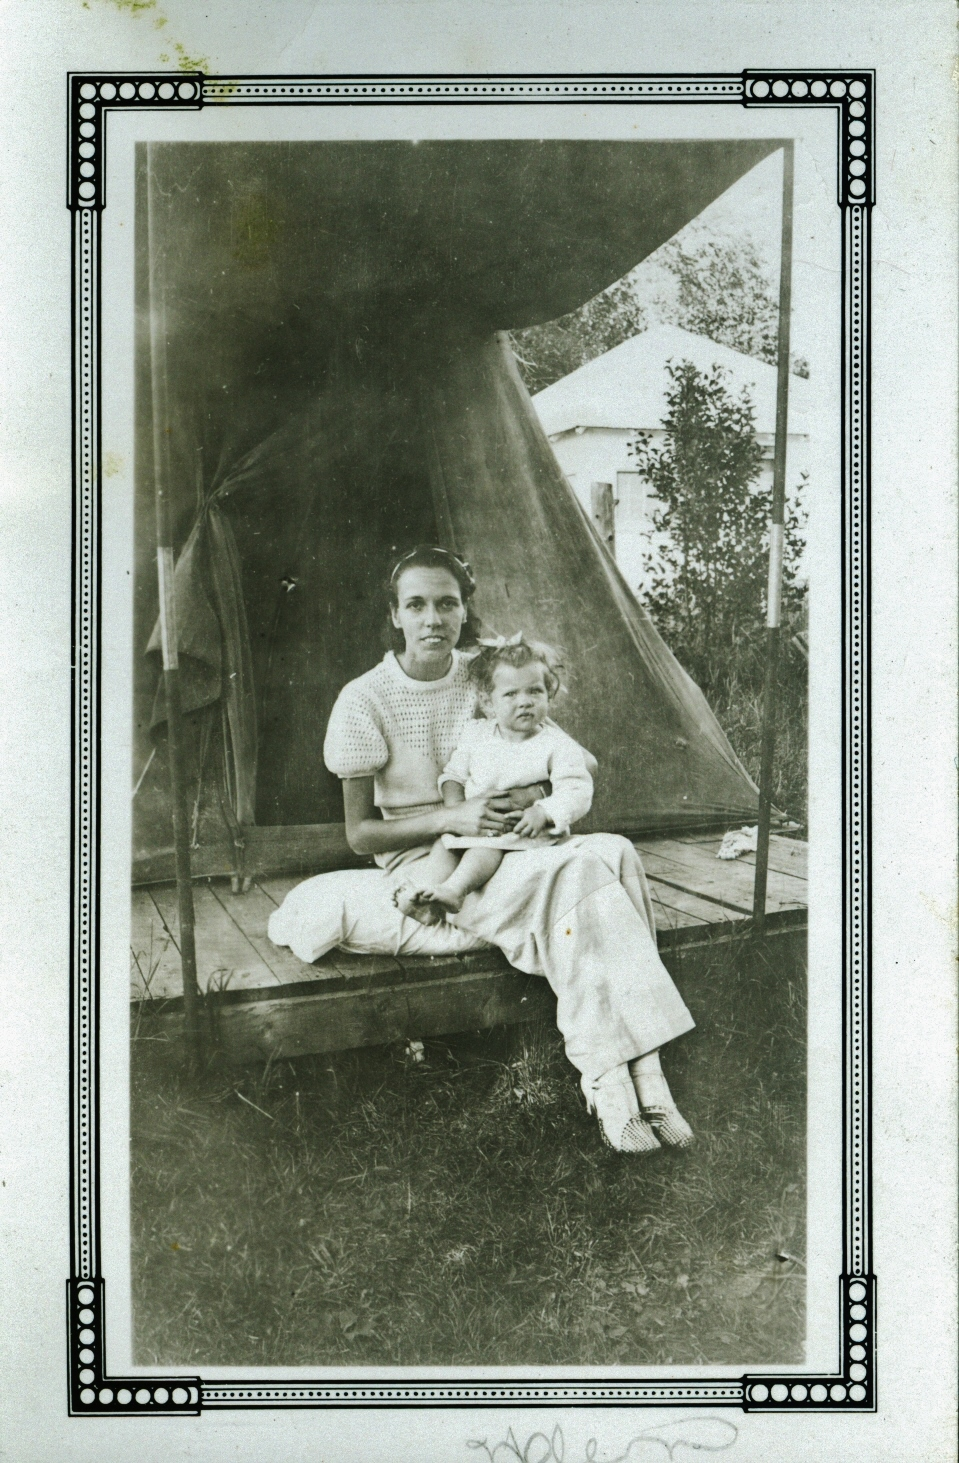 Helen Gaffney (Jones)  and Sheilagh H. Corrigan,  circa 1934  (Sheilagh was born in 1933